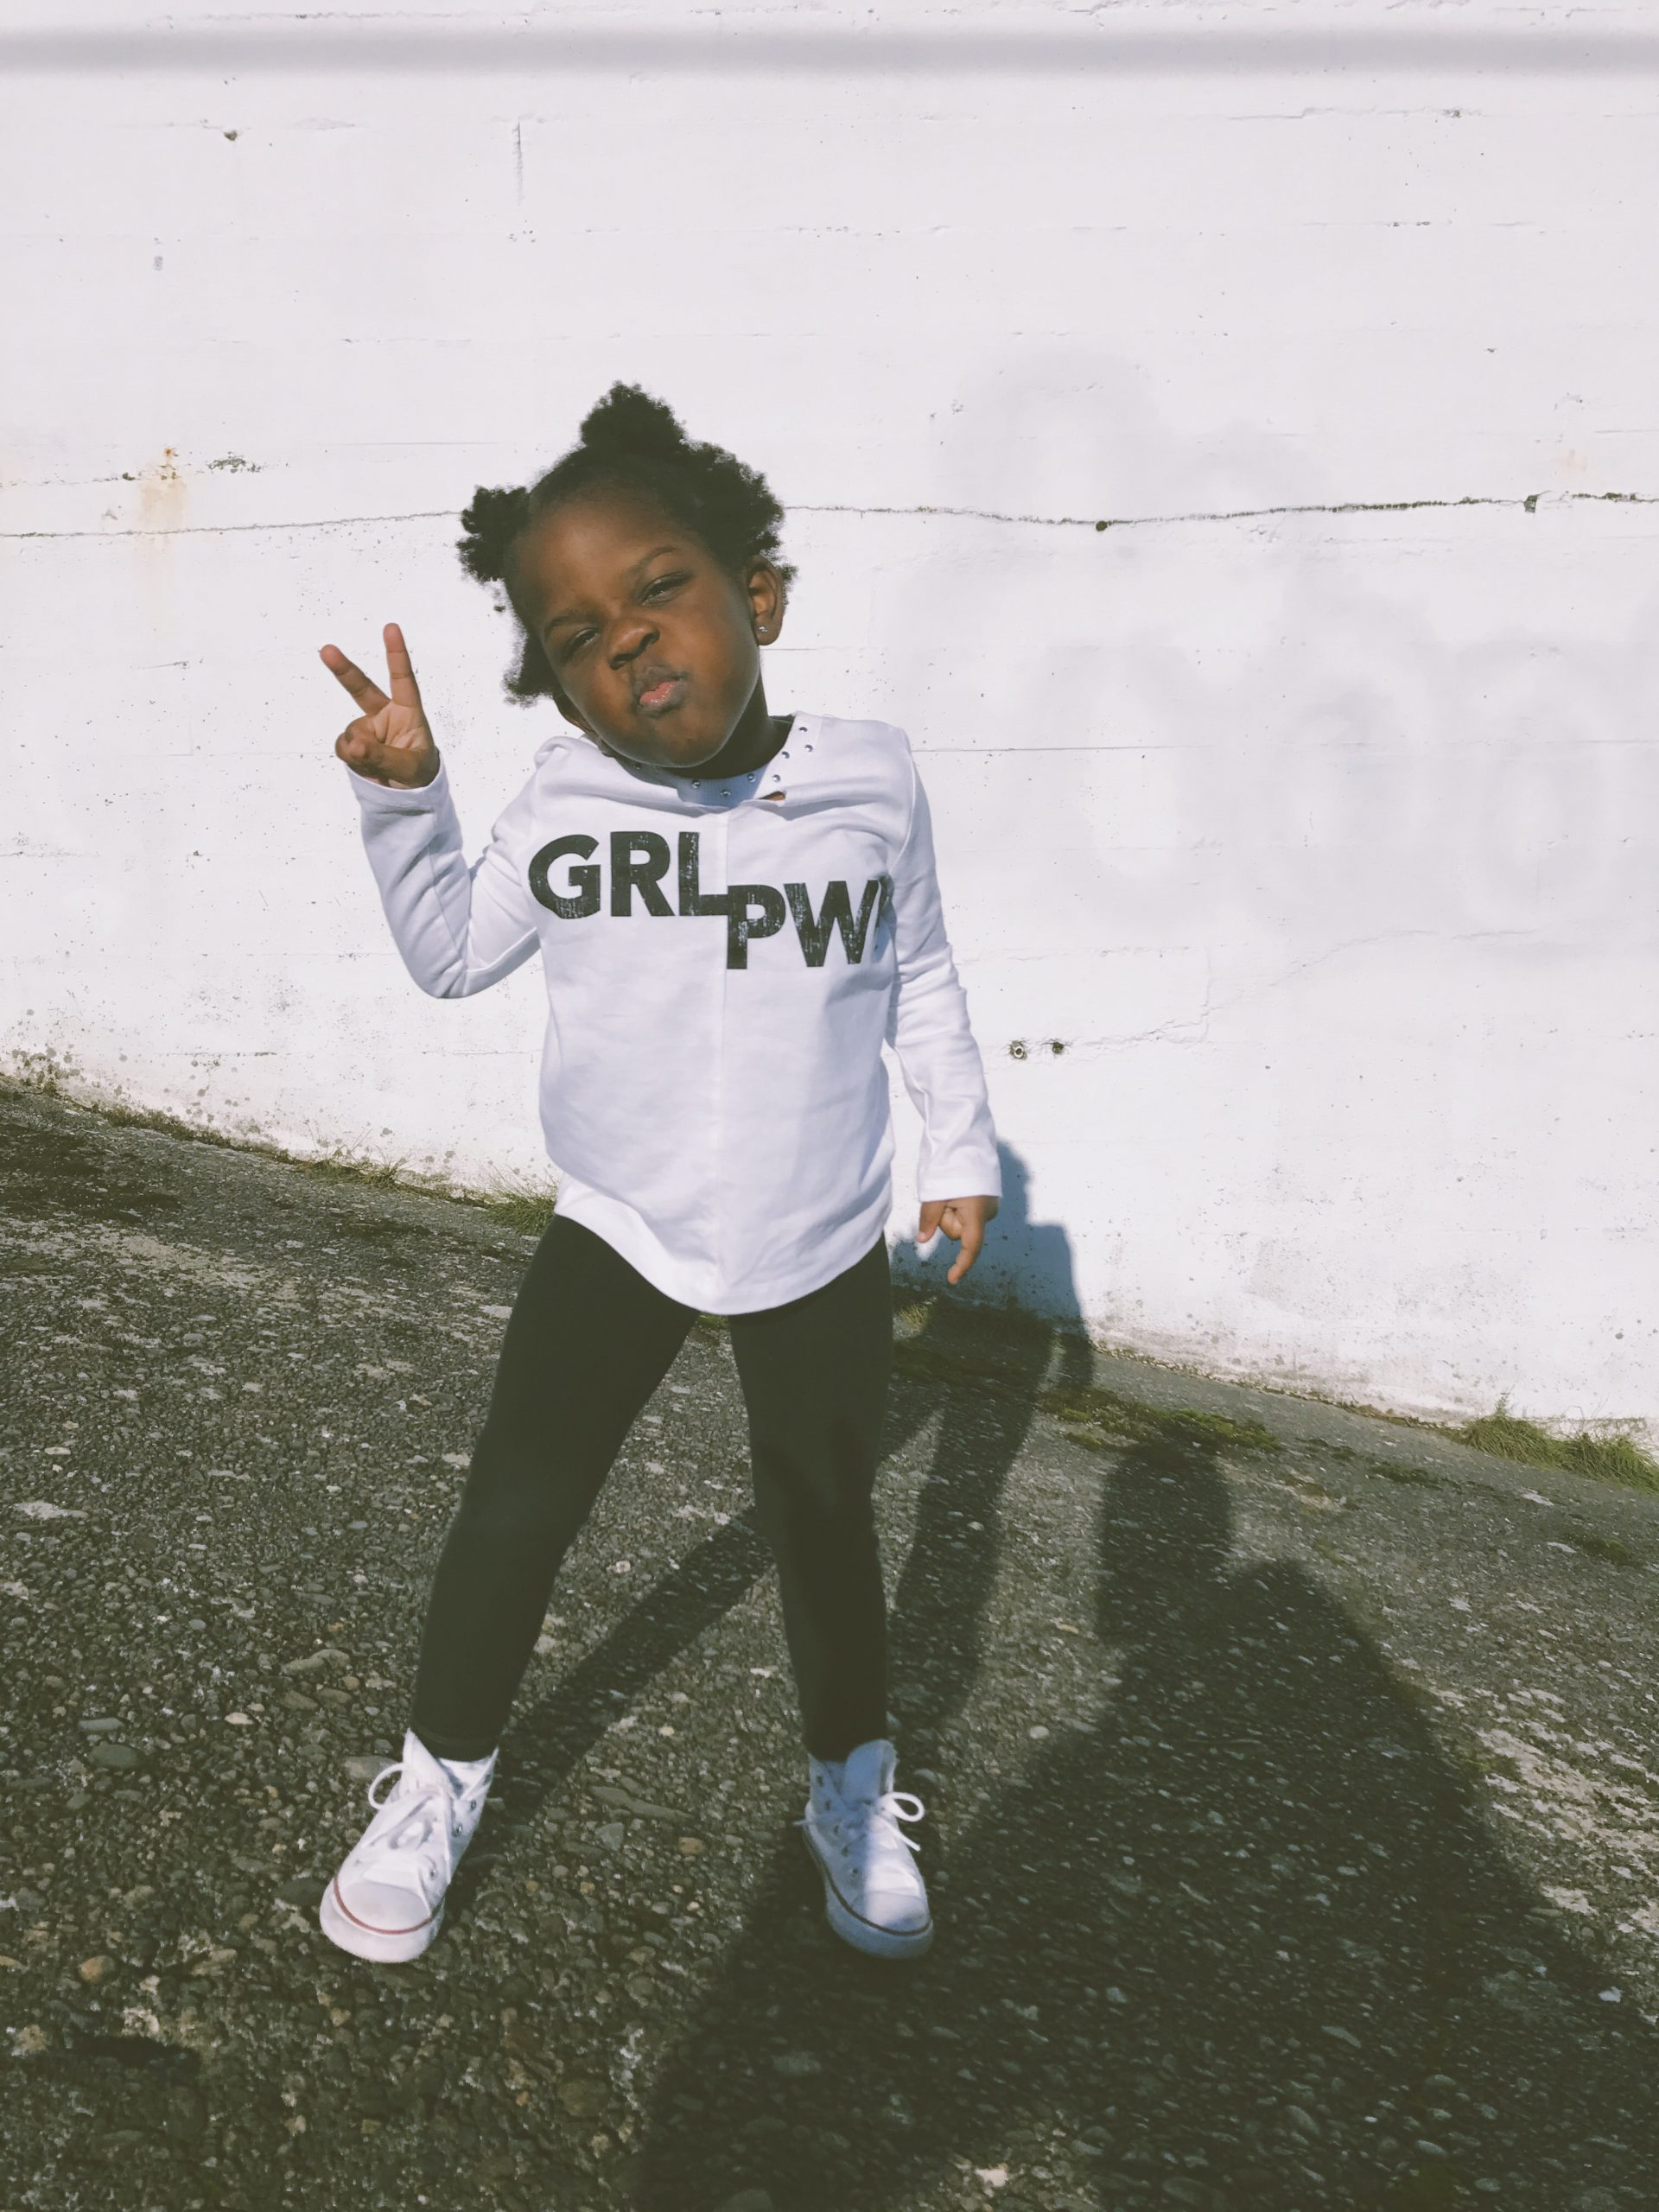 young girl giving peace sign with GRL PWR on shirt